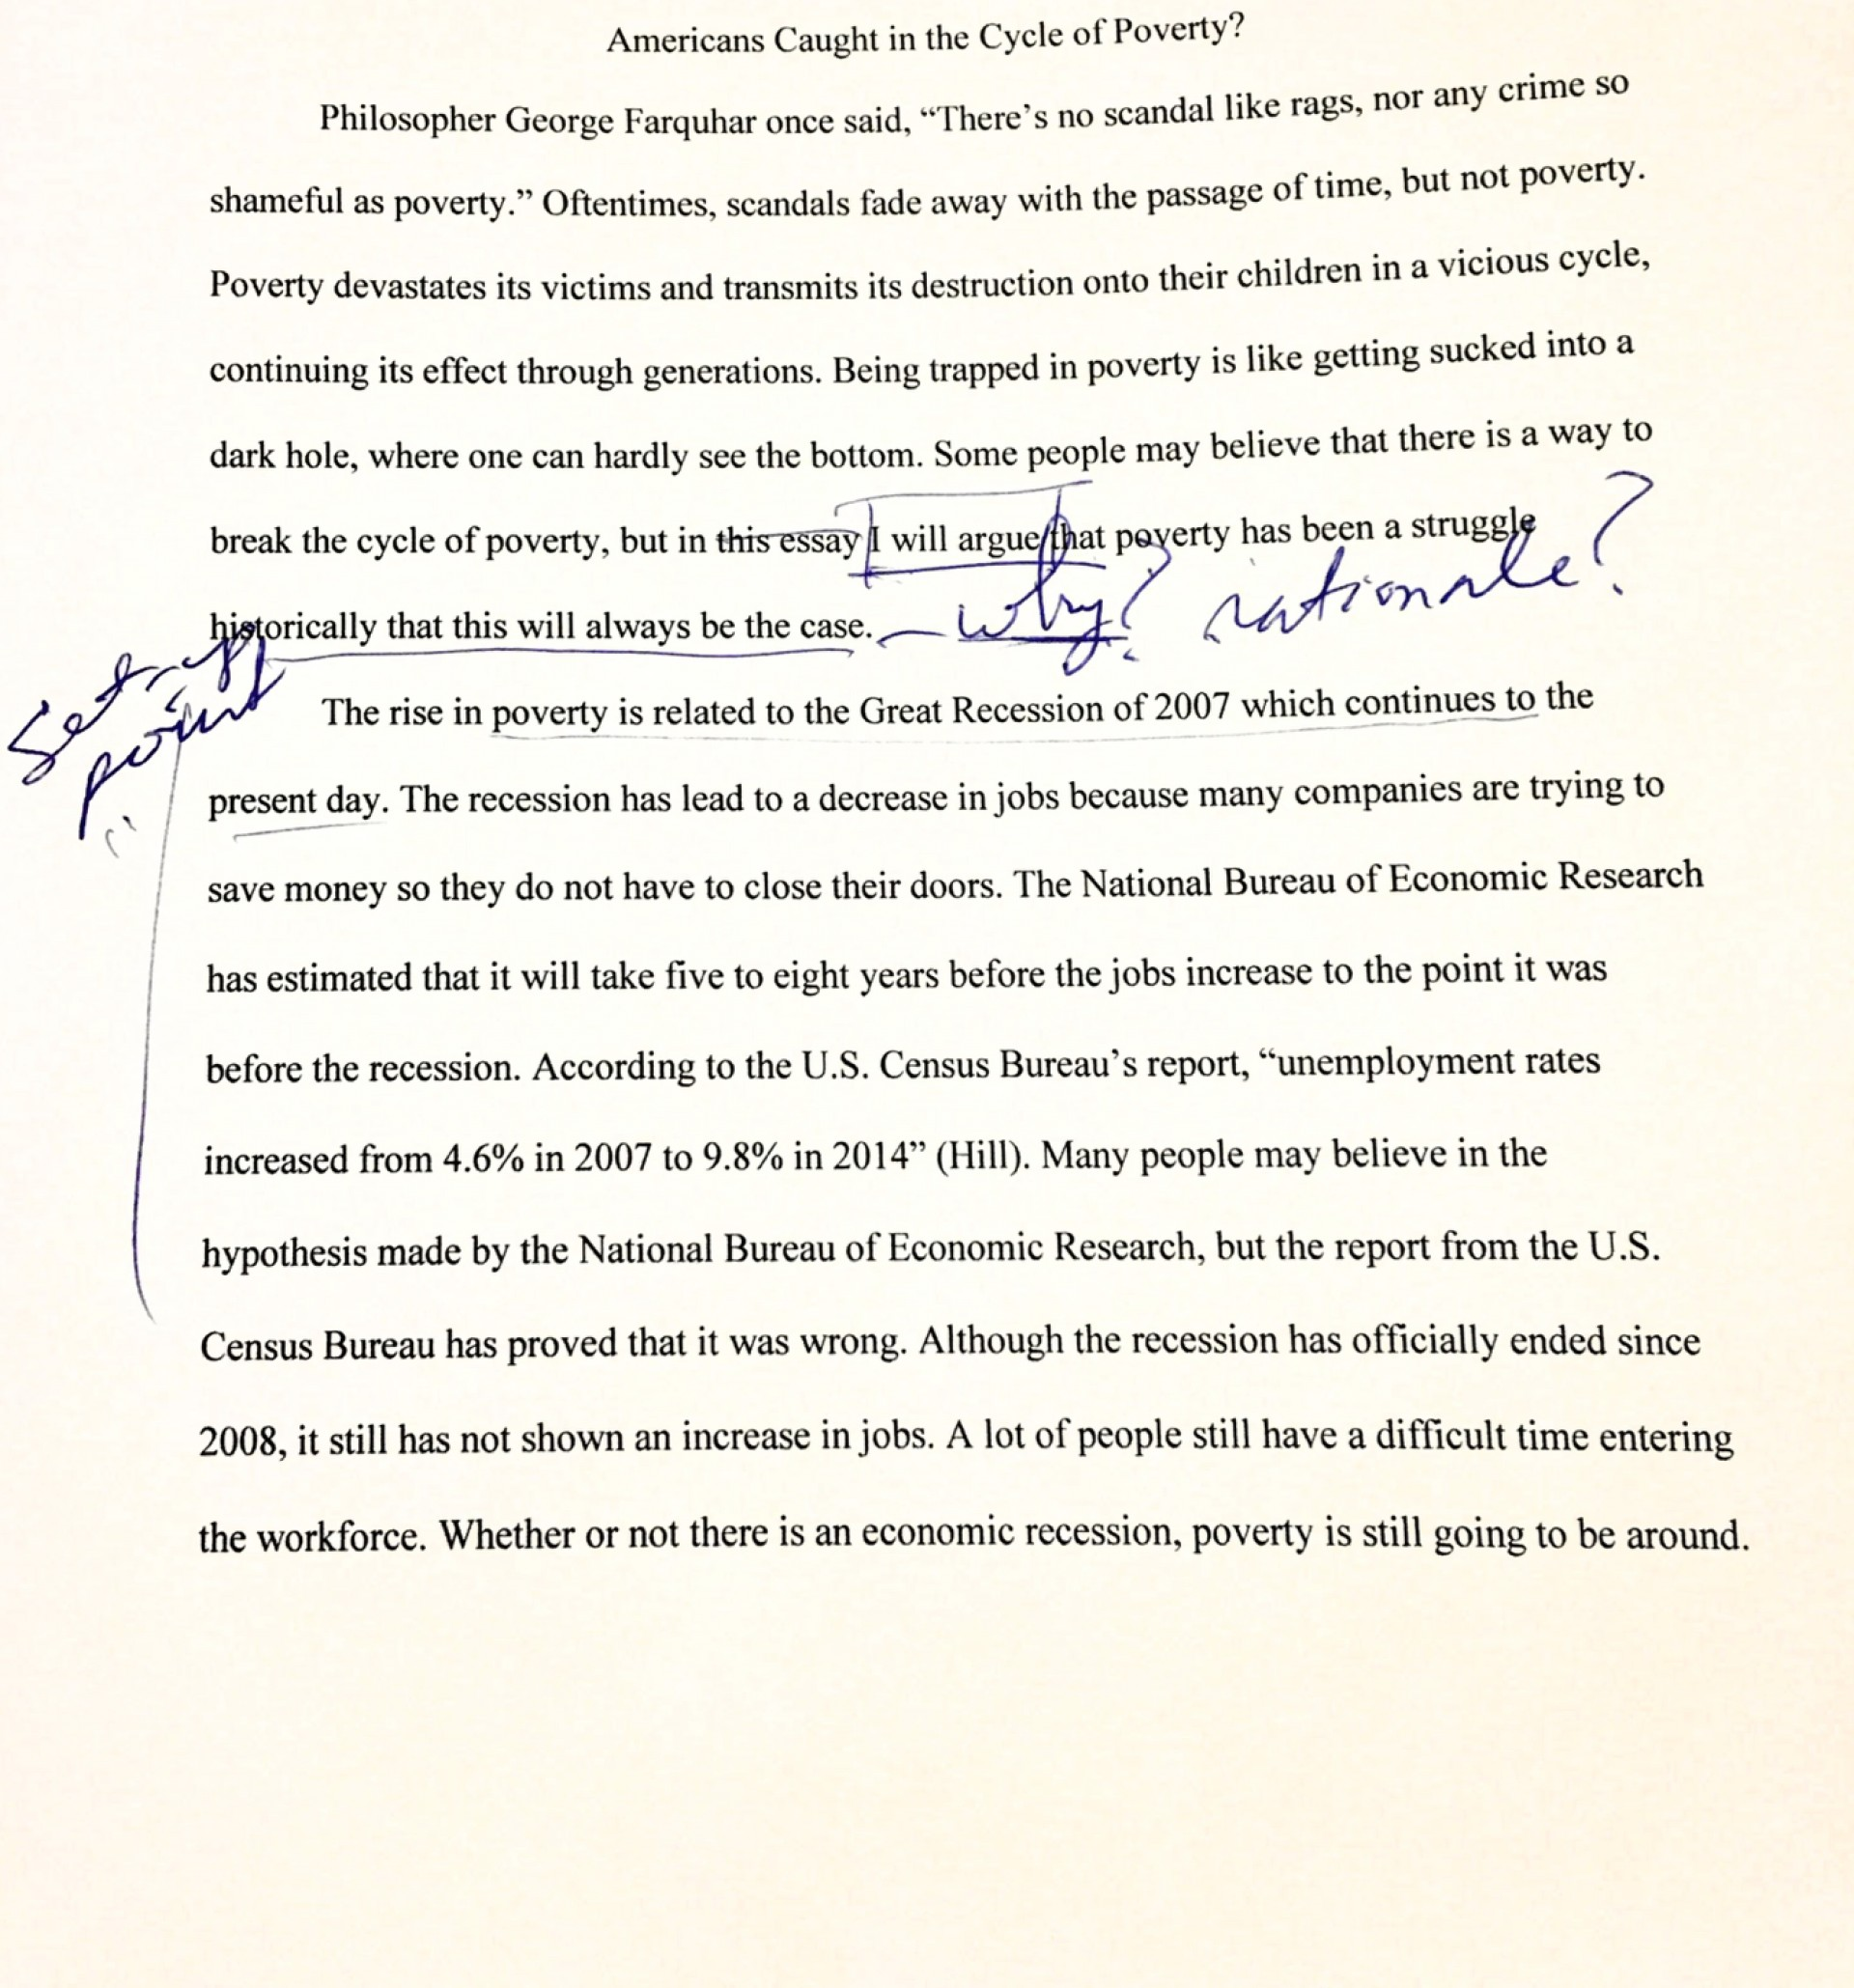 012 Essay Example Rewrite My Rewriter Jury Service Dr Article Please Help Me Write For Surprising With Introduction Sound Better Research Paper Free 1920